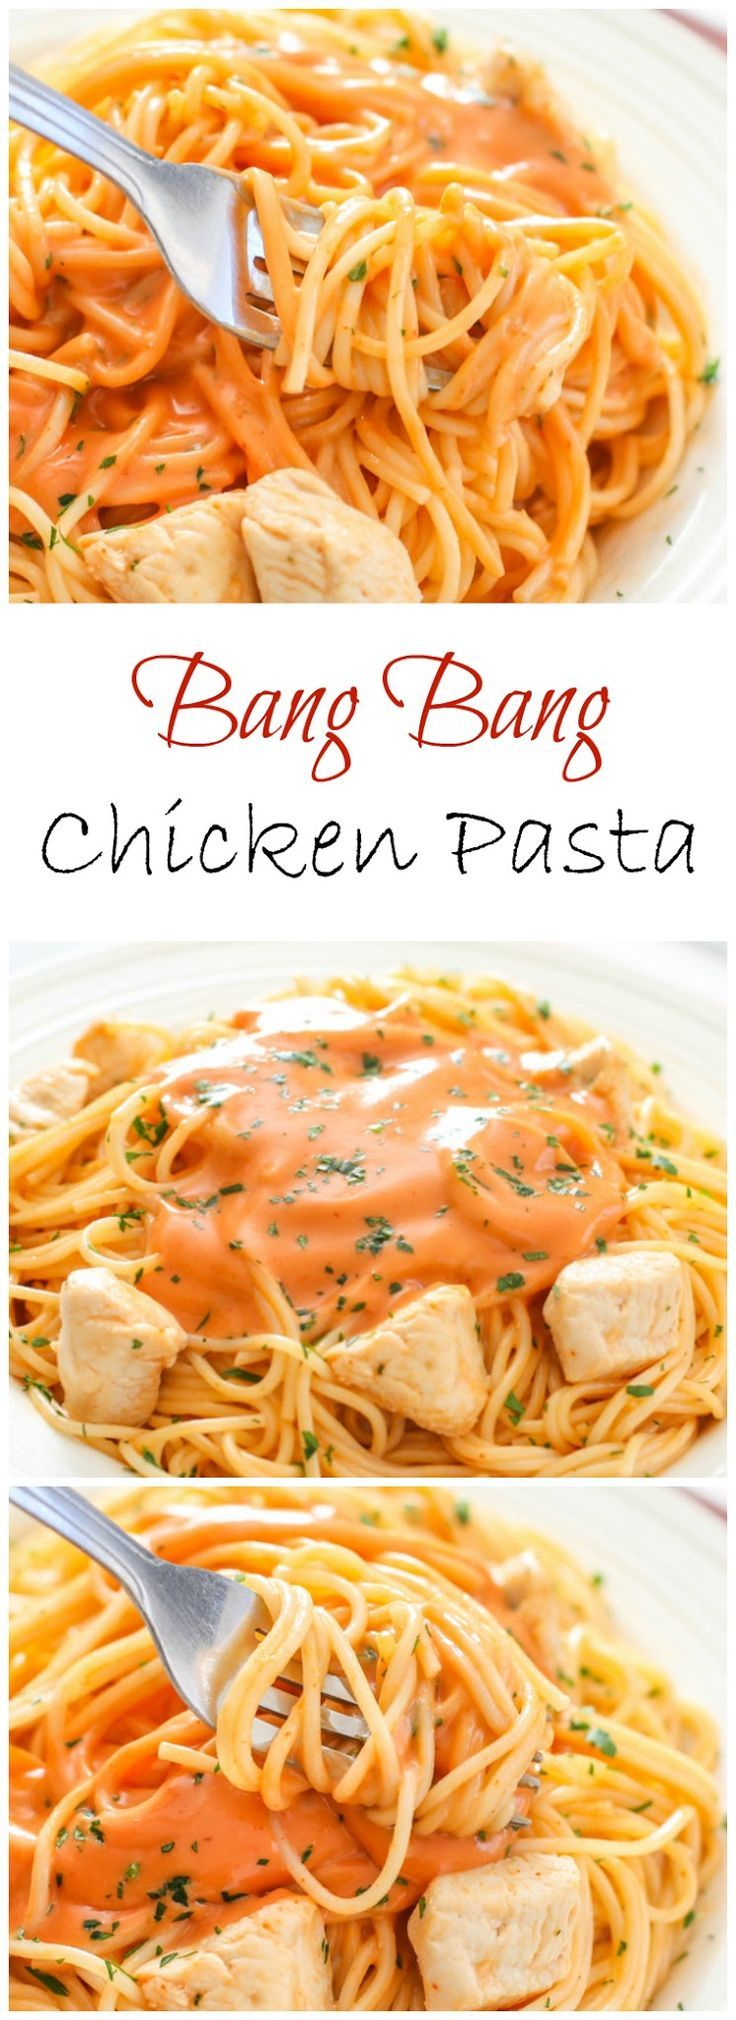 Bang Bang Chicken Pasta. This sauce is so addicting!